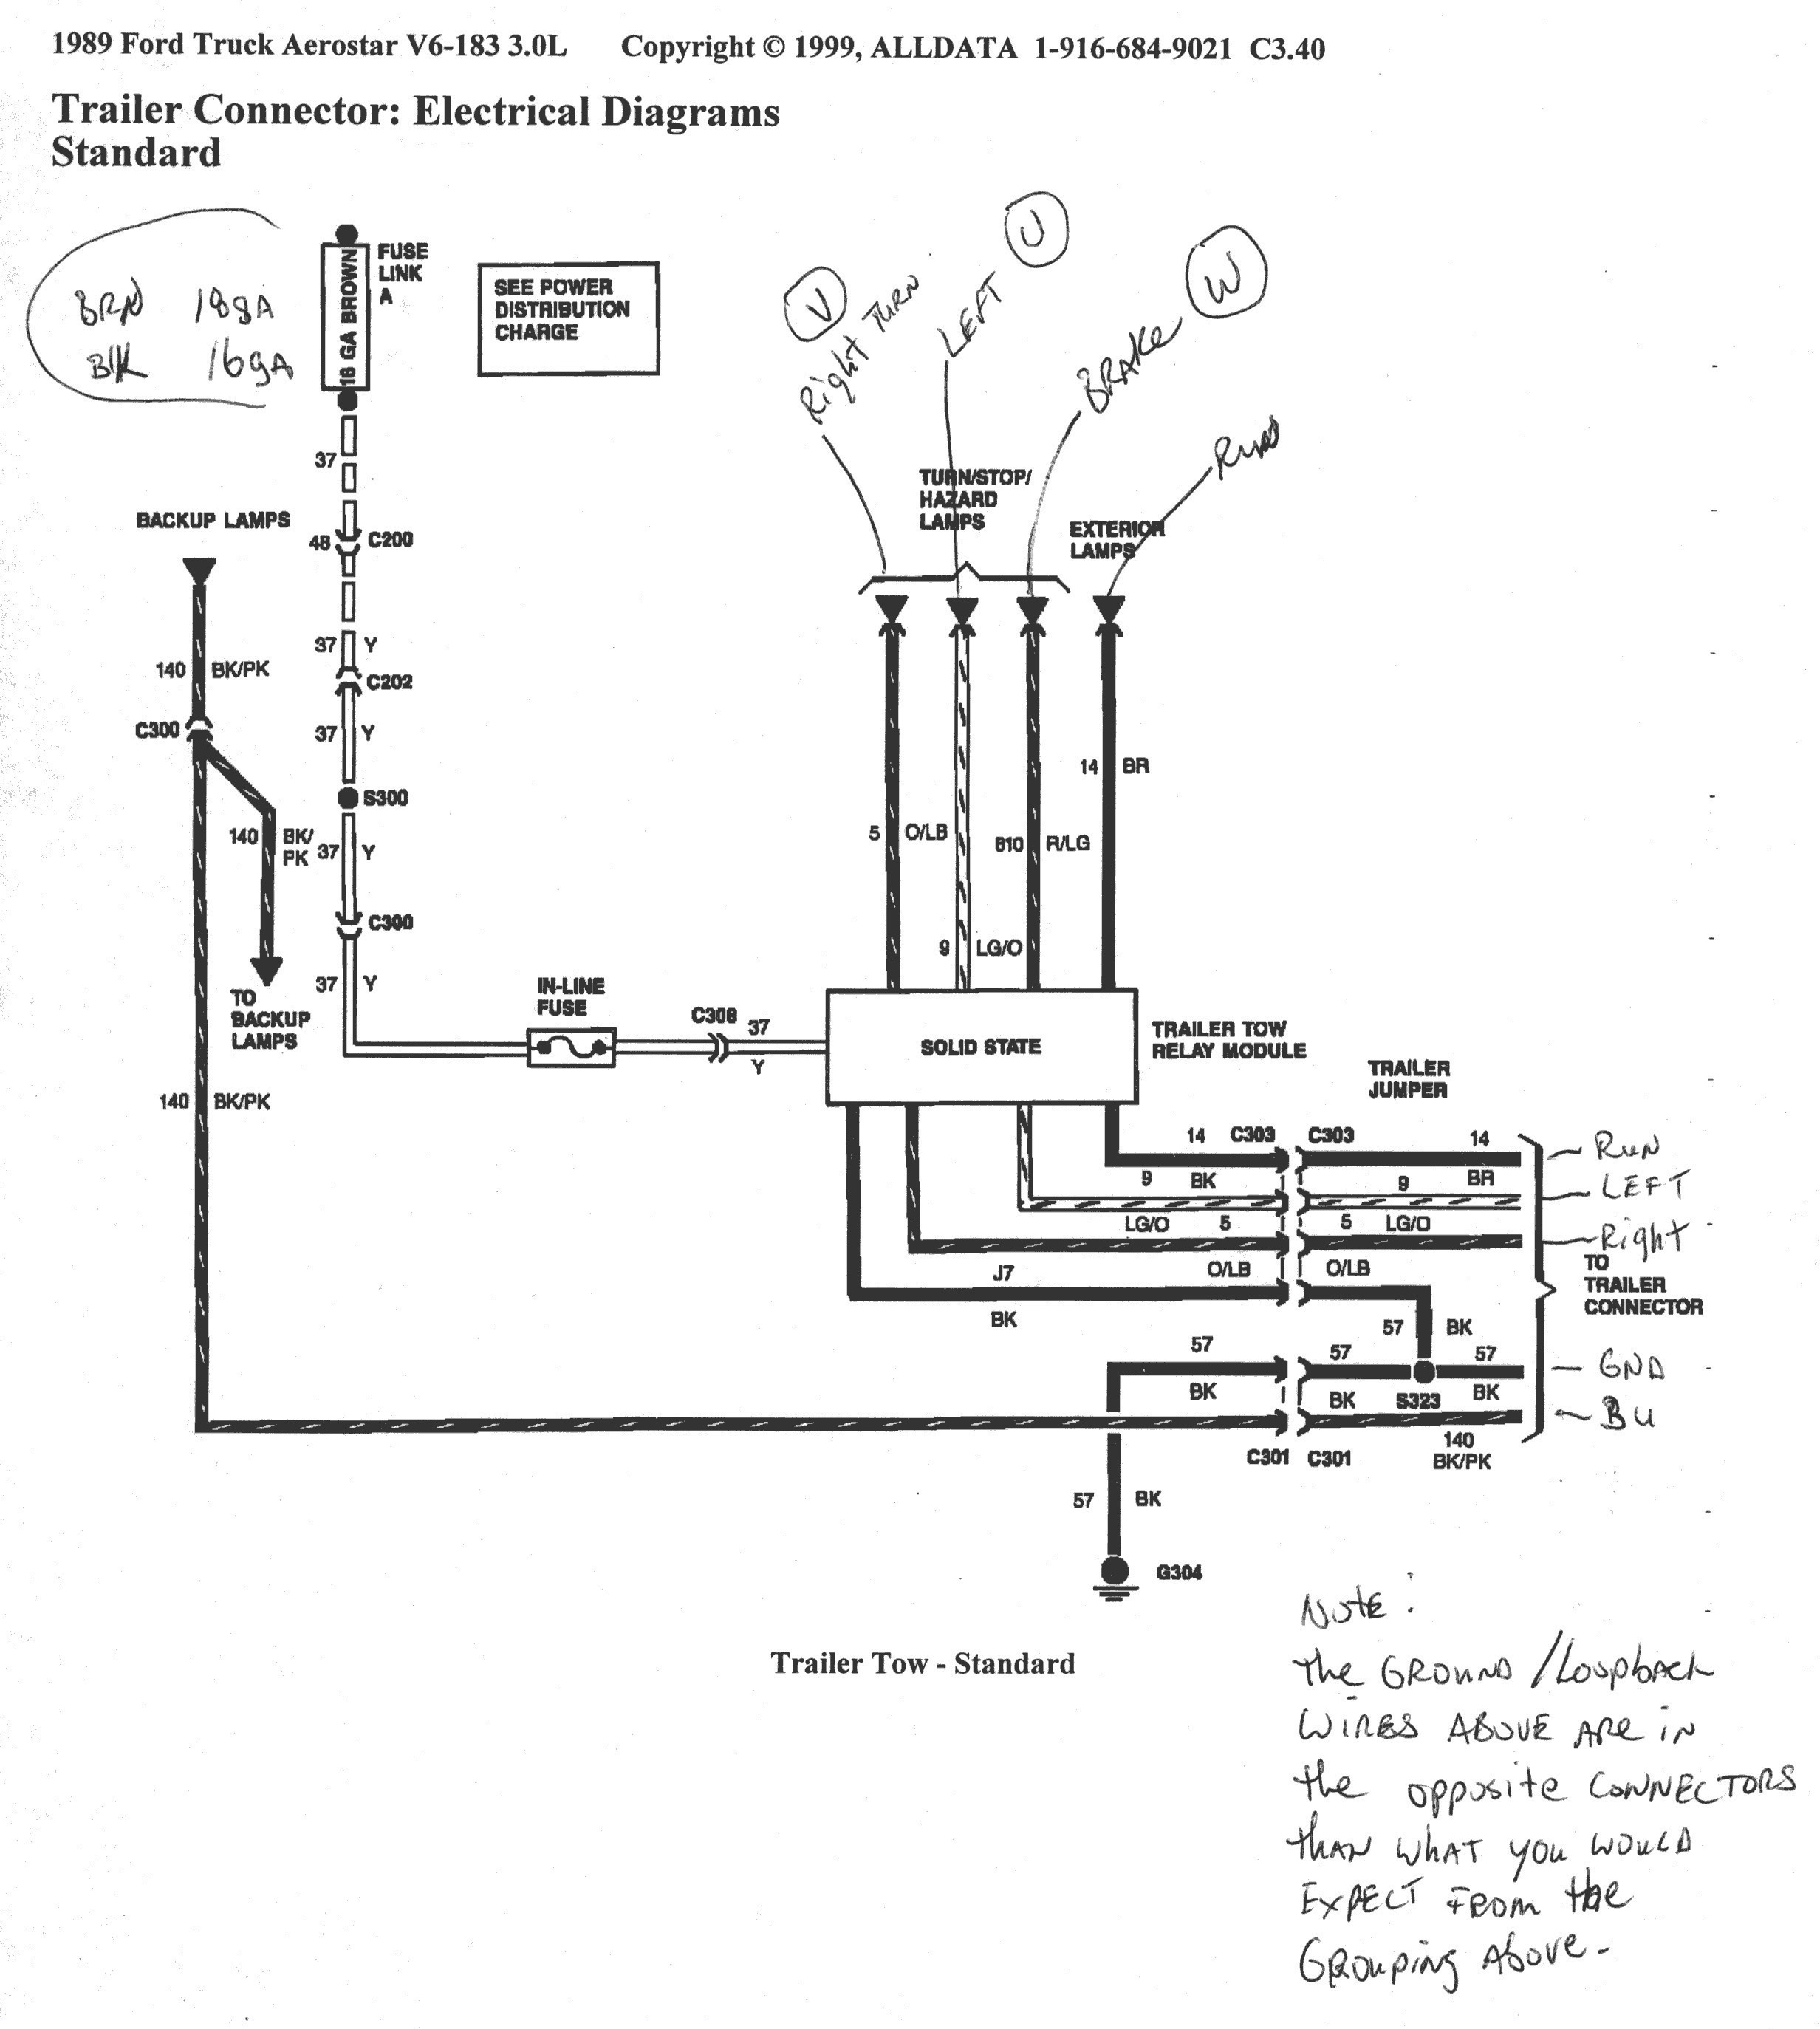 1996 ford F250 Tail Light Wiring Diagram Wiring Diagram for 1980 ford Van Wiring Diagram New Of 1996 ford F250 Tail Light Wiring Diagram 7 3l Wiring Schematic Printable Very Handy Diesel forum